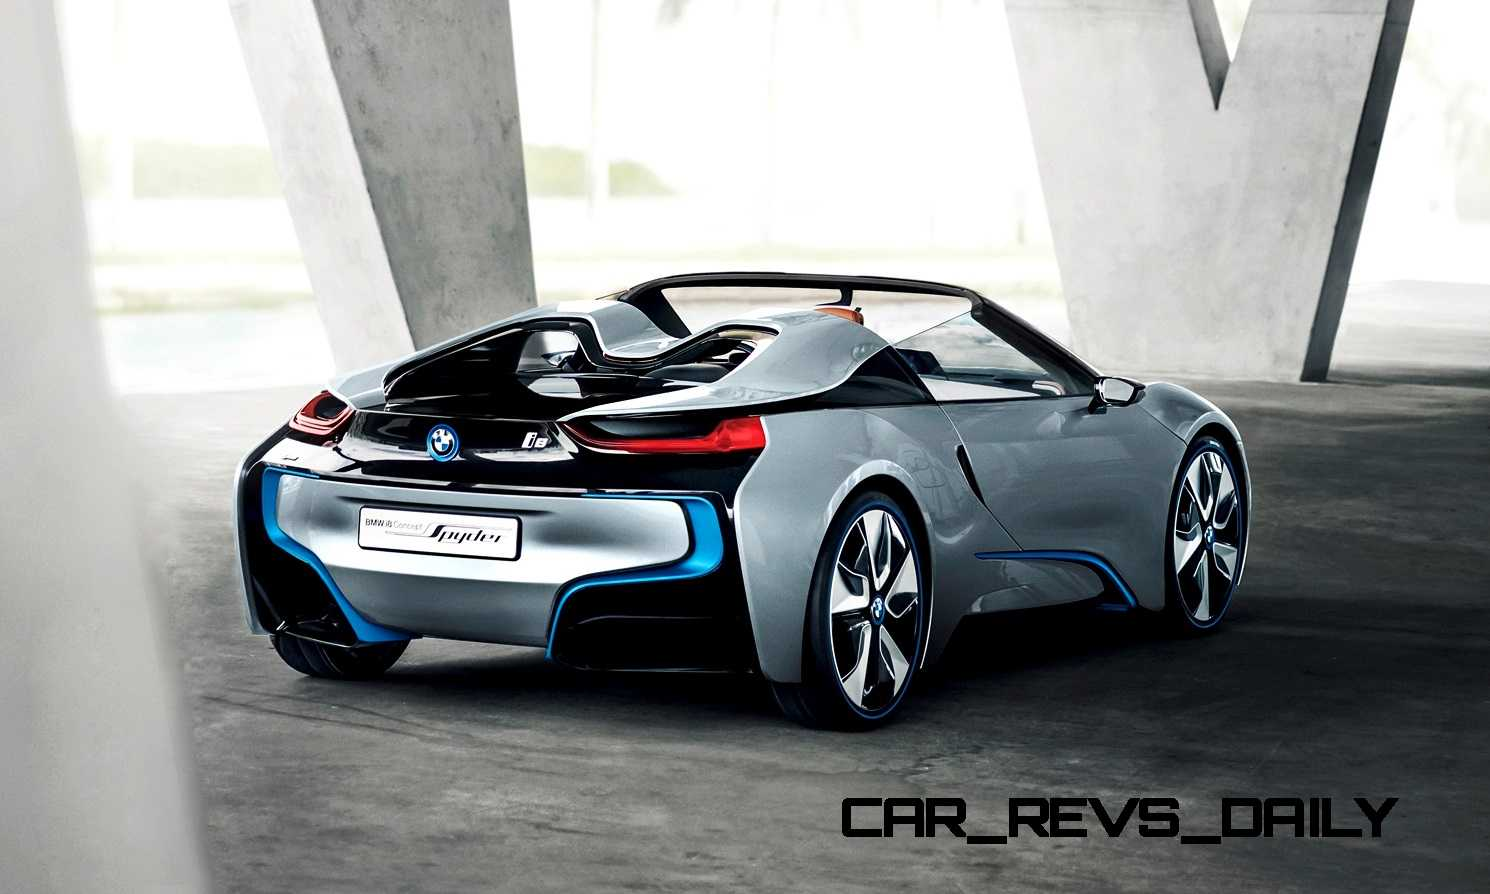 Concept Flashback 2012 Bmw I8 Spyder Wiring Diagrams European Audi Type 44s Pictures To Pin On Pinterest 30